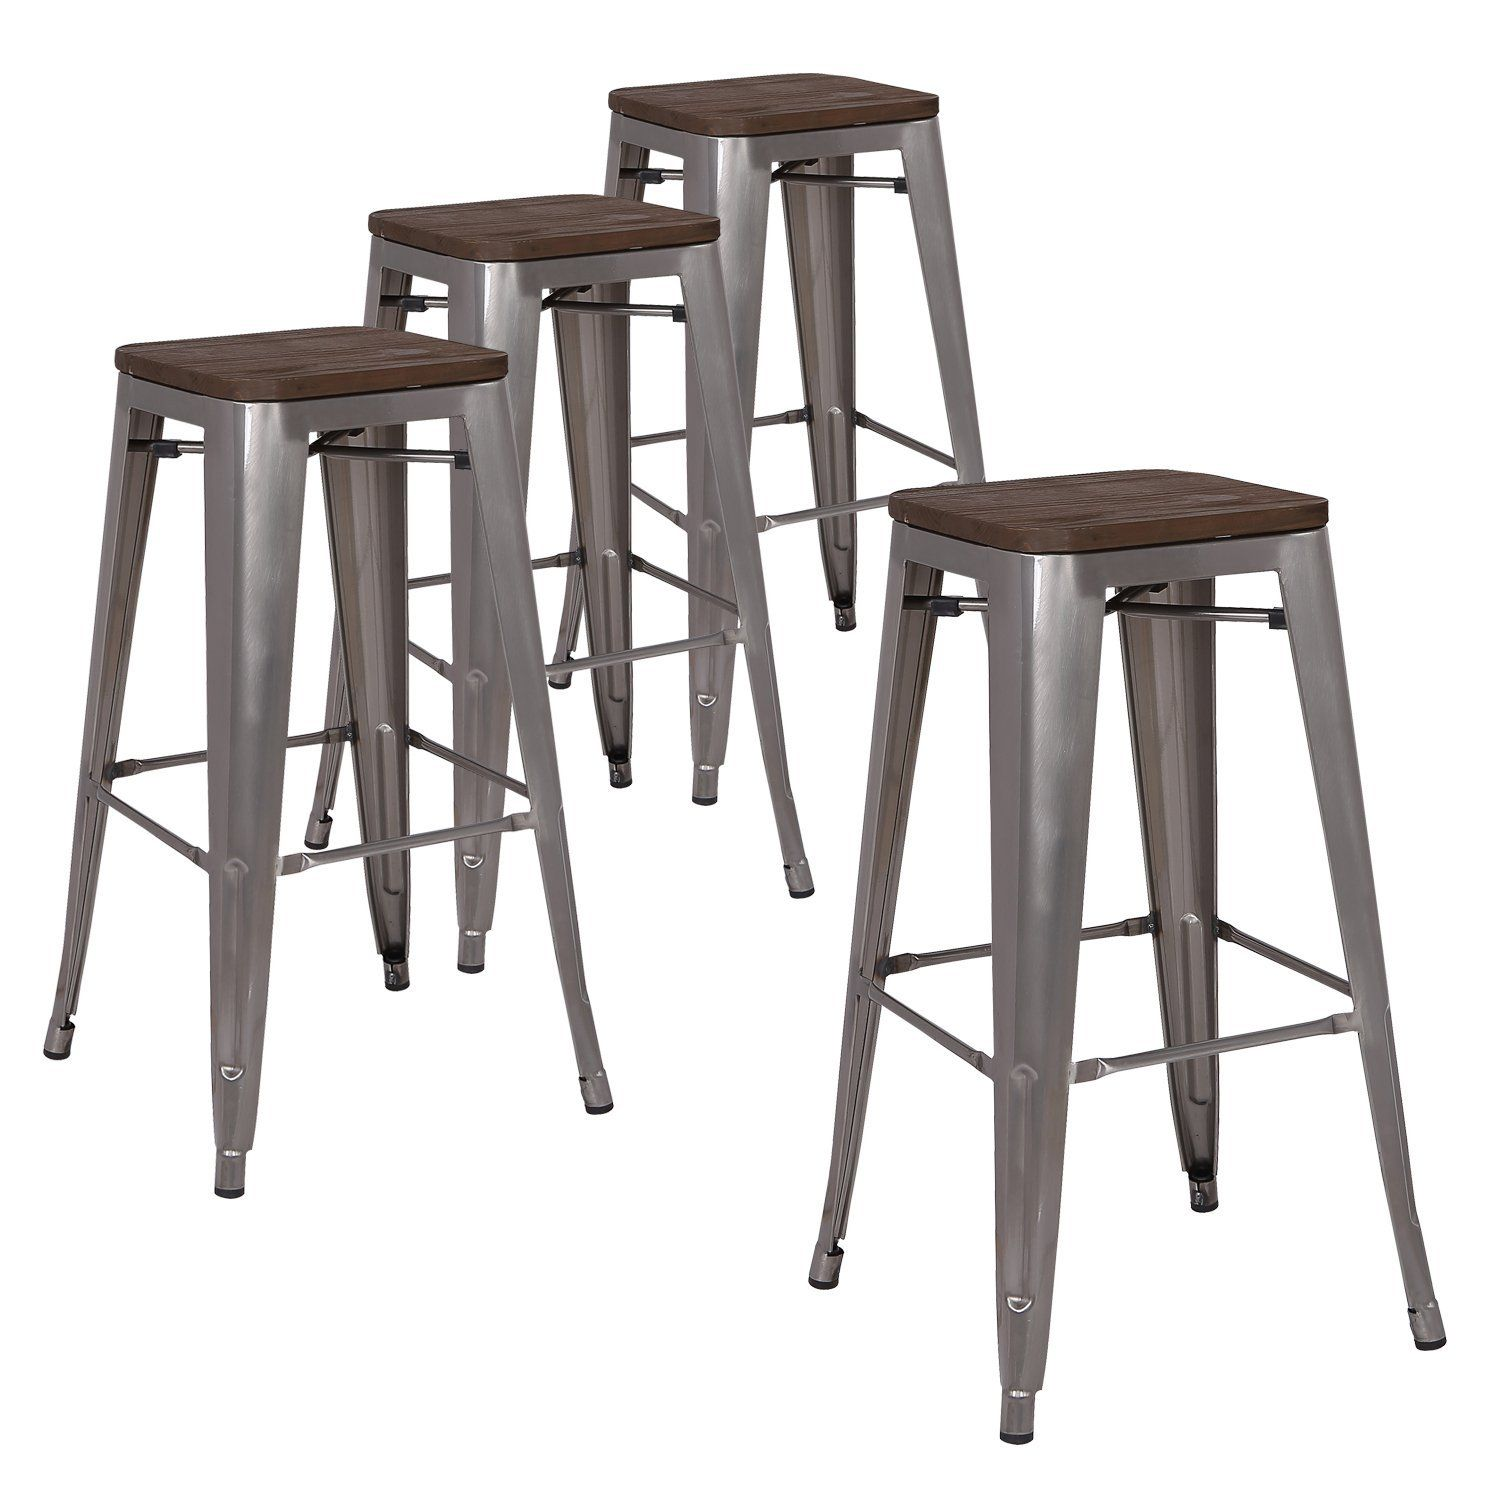 4 Stackable Industrial Bar Stools With Images Bar Stools